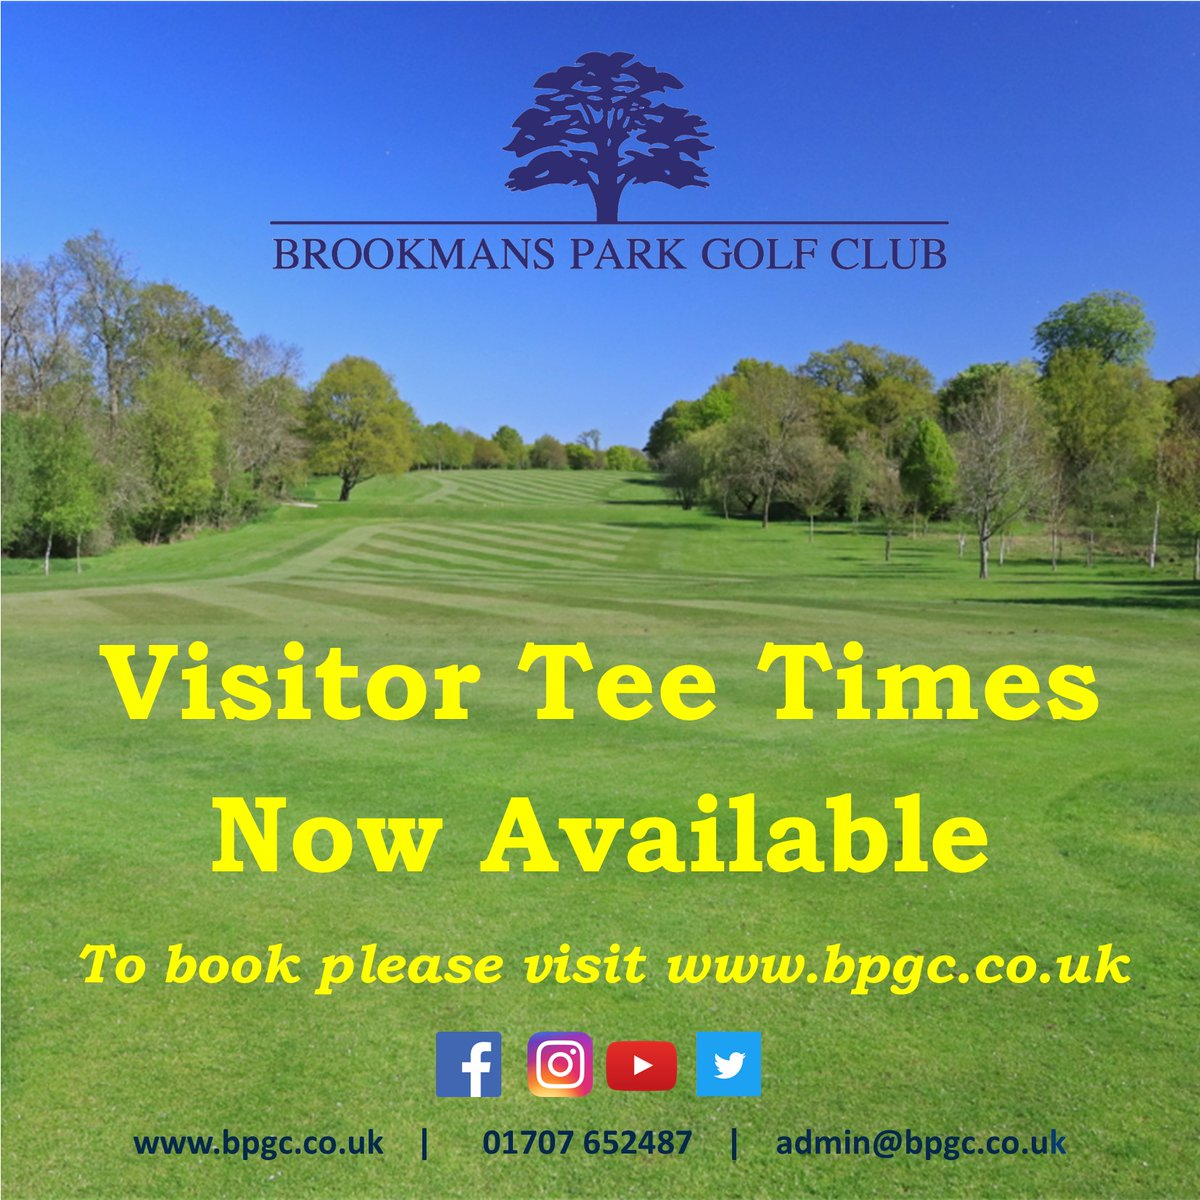 Don't forget to book in for your round of golf this weekend. #brookmansparkgolfclub #golf #visitorgolfpic.twitter.com/e4C9JbPKWZ